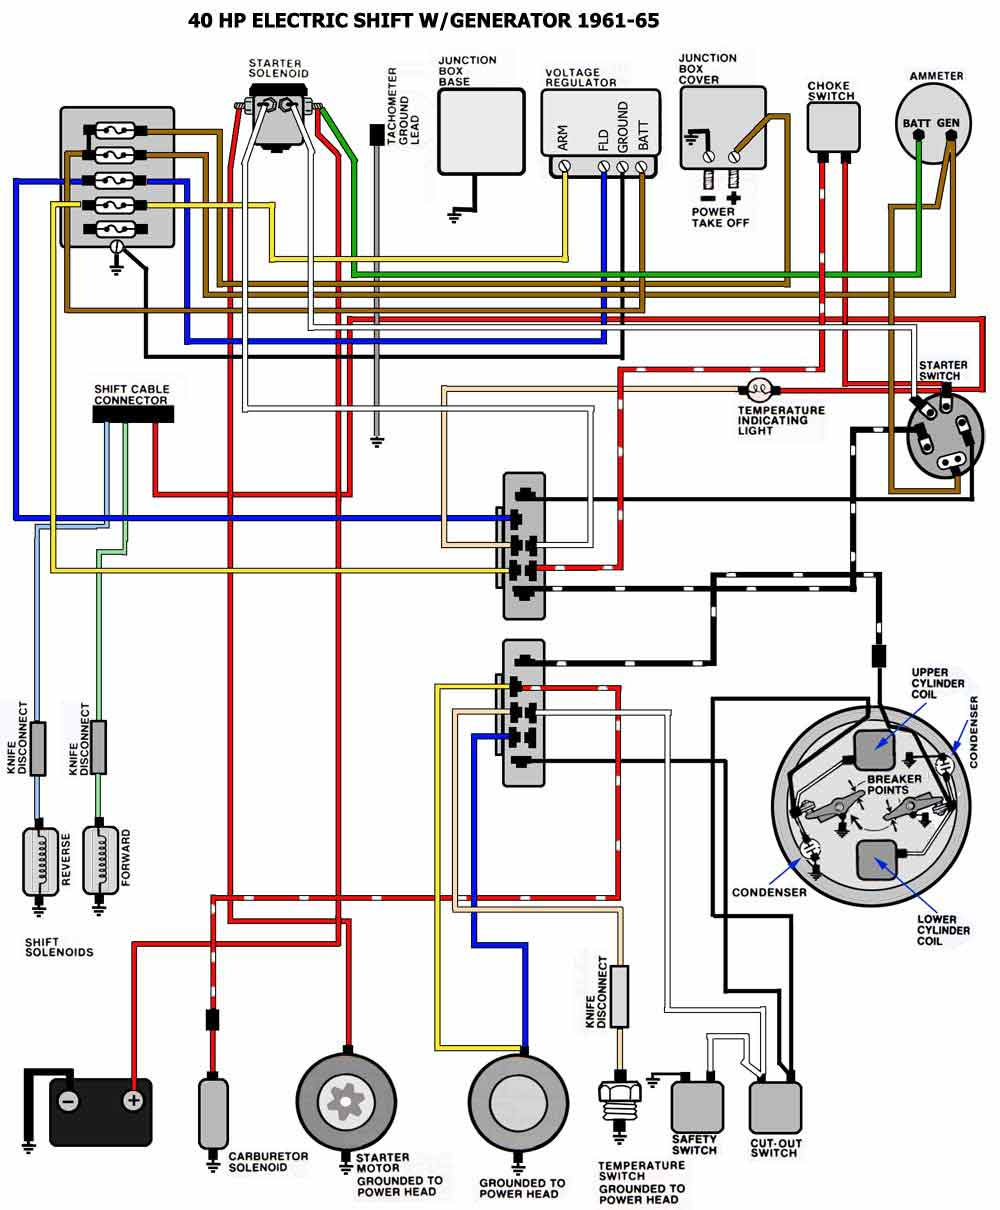 Evinrude Wiring Diagrams - 4.14.danishfashion-mode.de • on